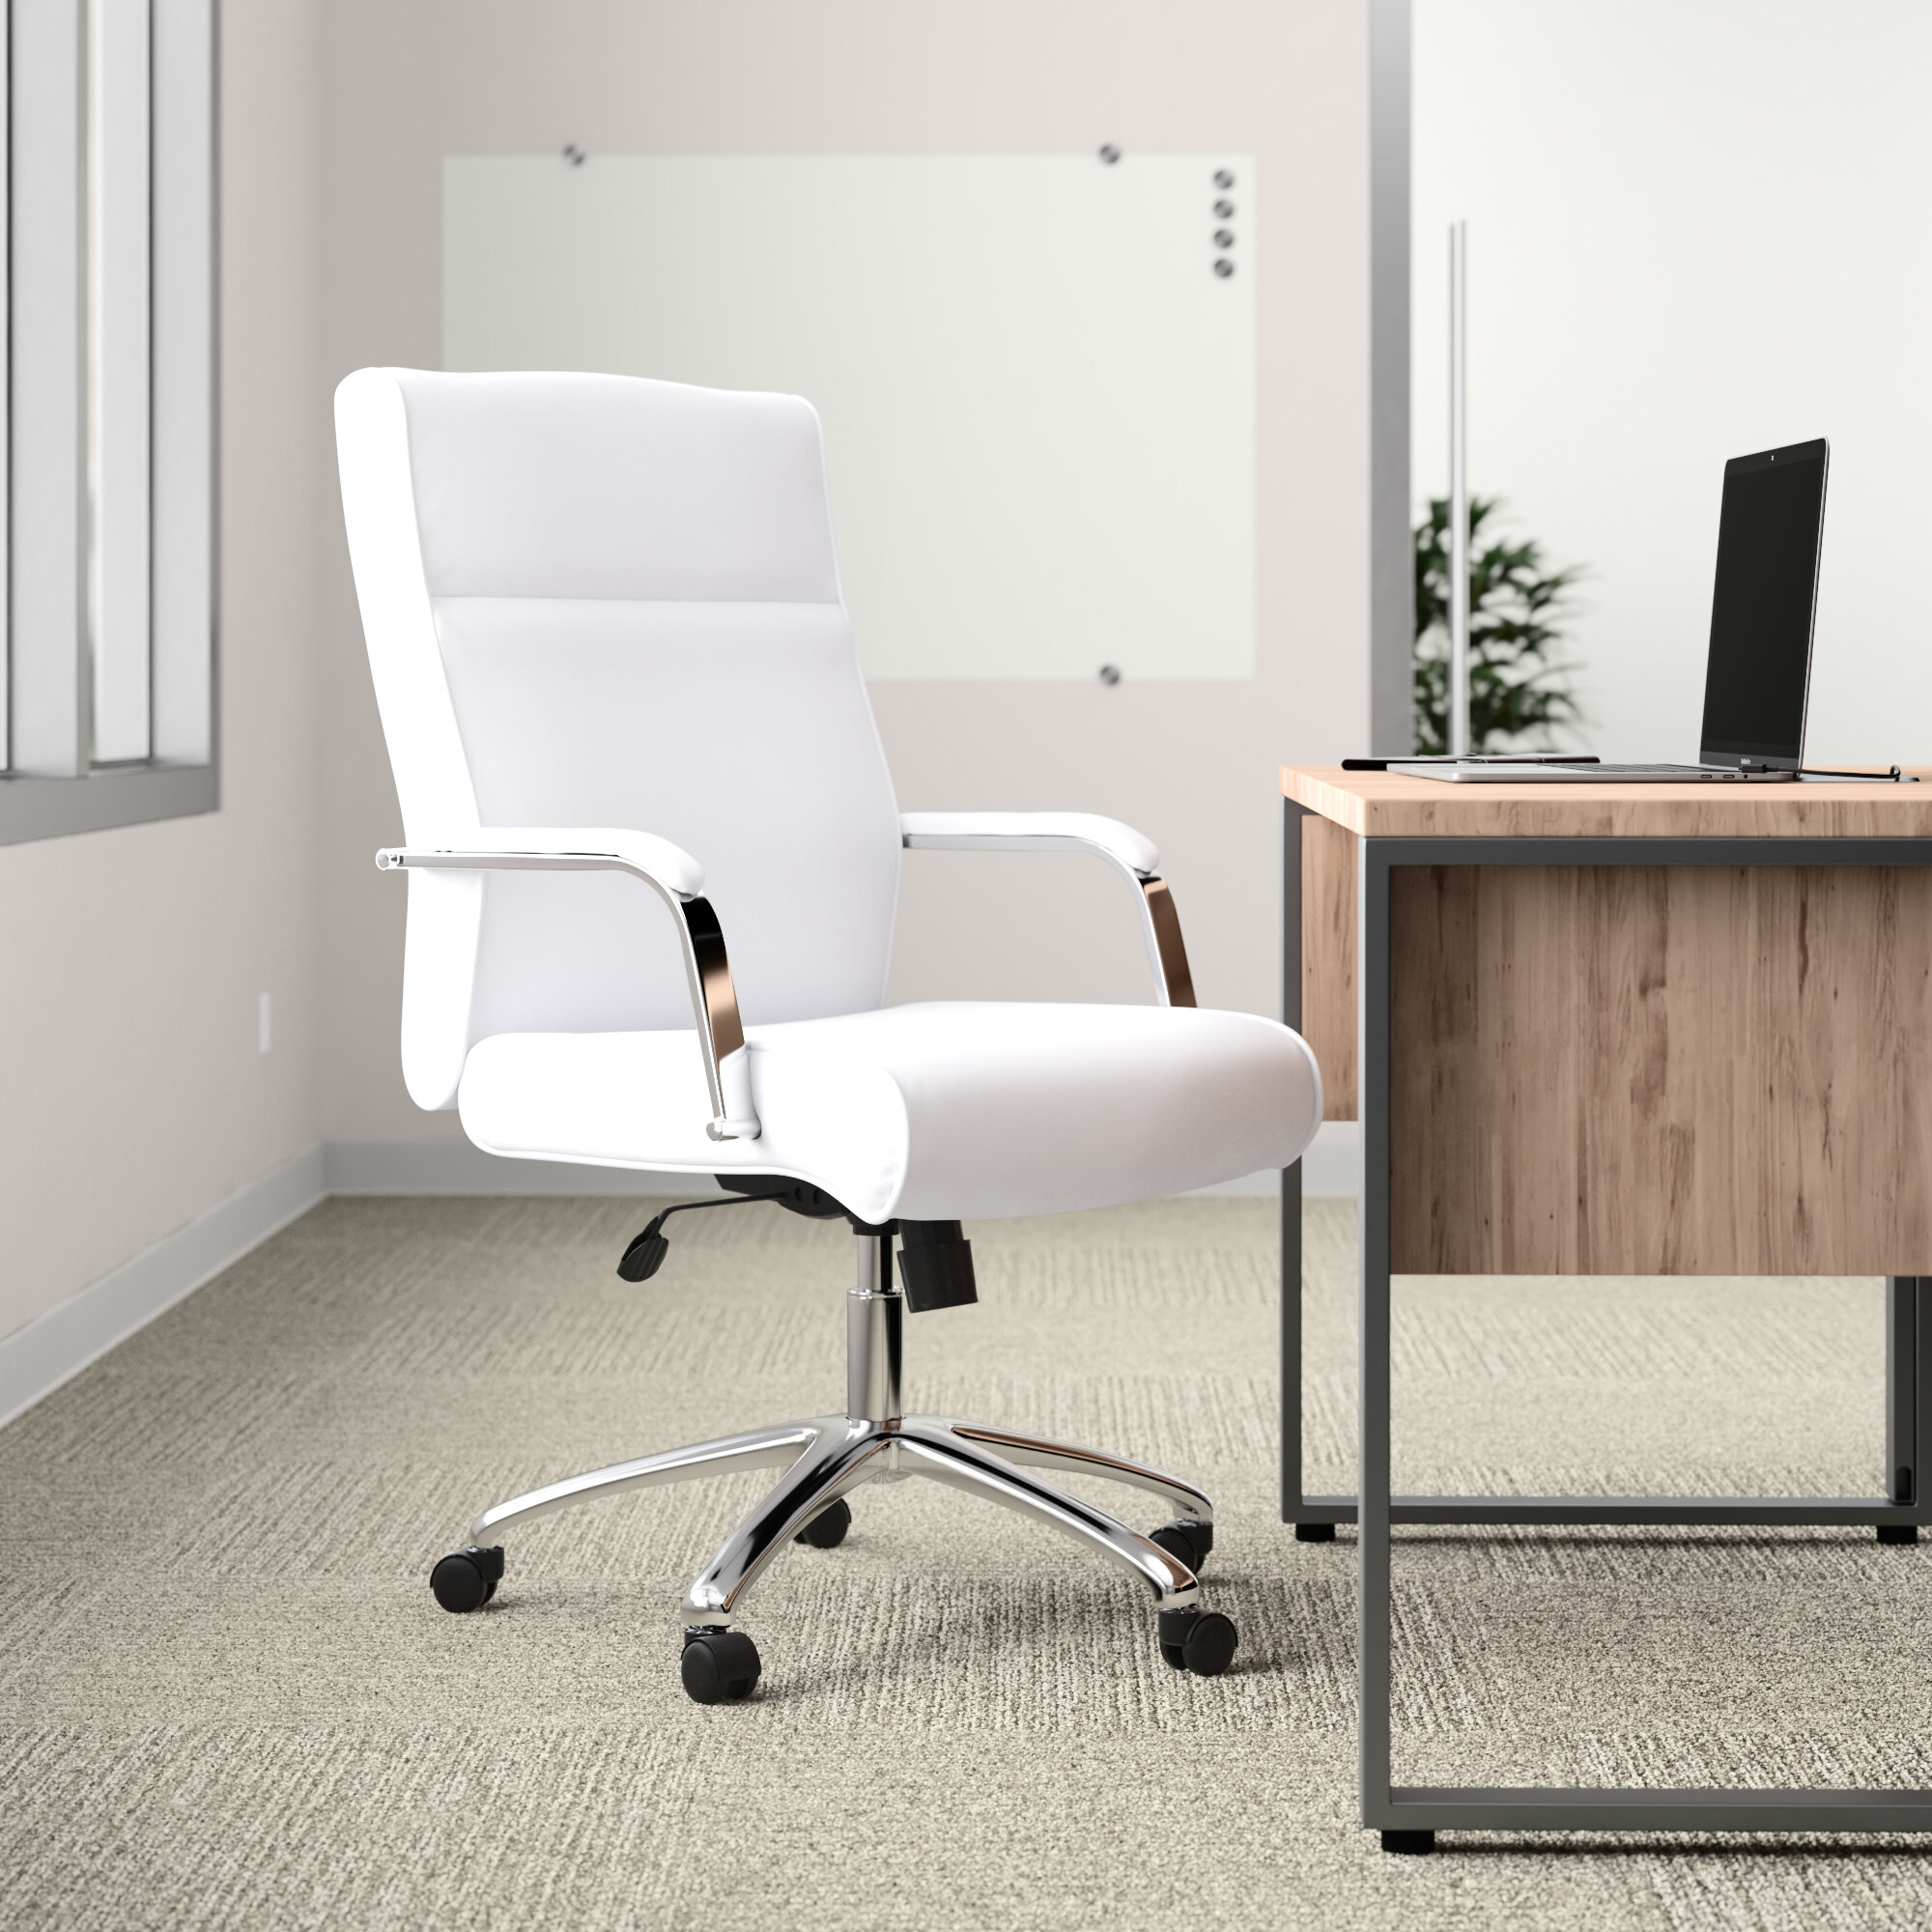 Upper Square Landyn Conference Chair Reviews